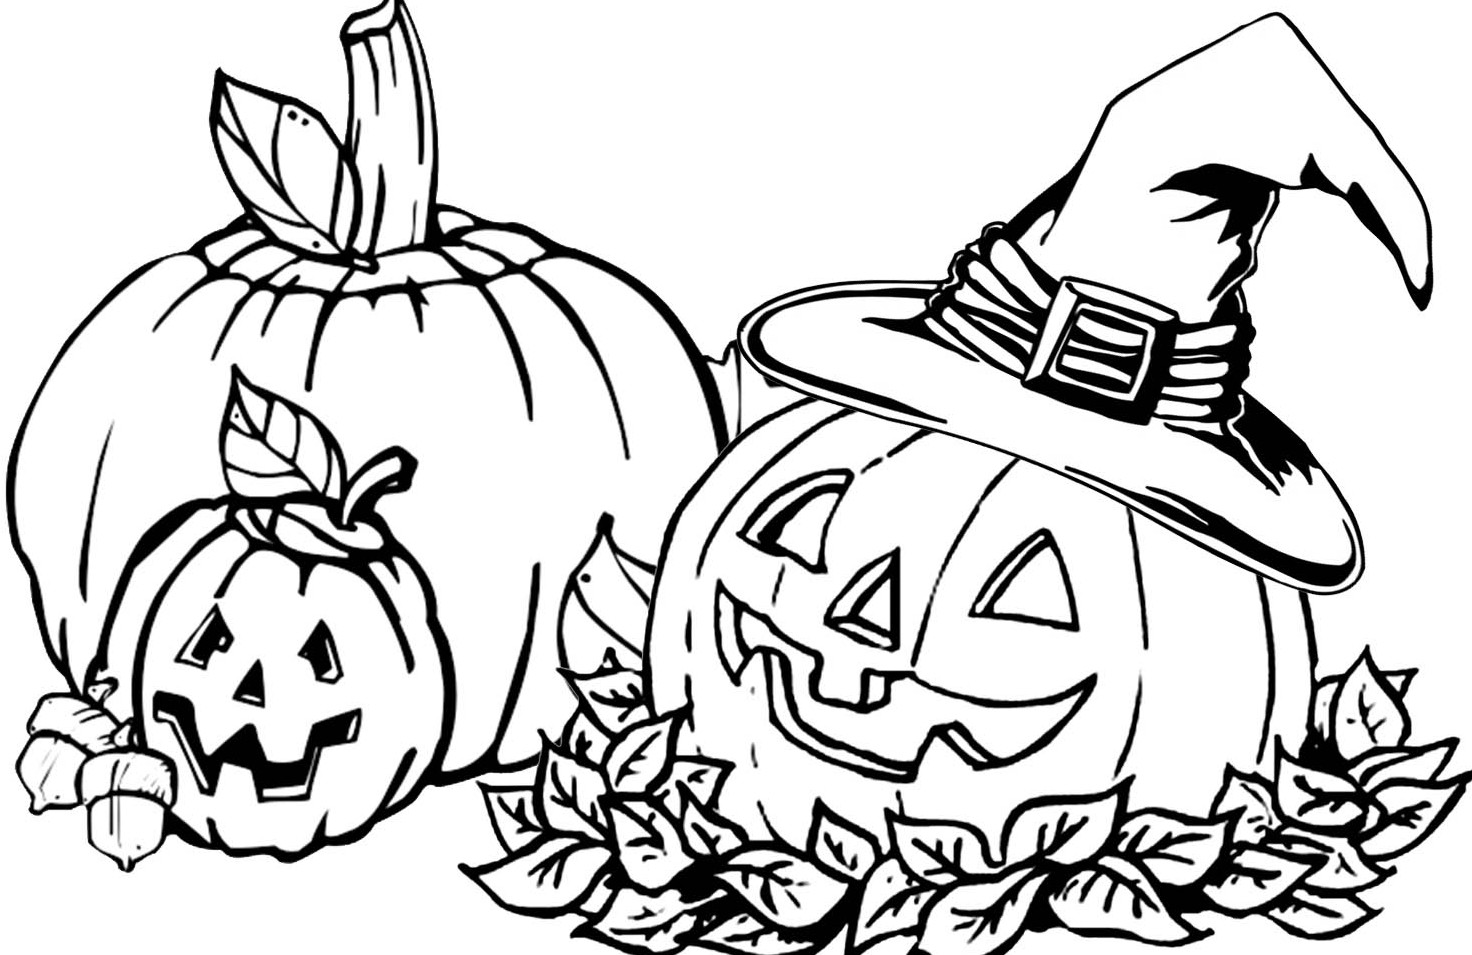 coloring pages pumpkins print 30 free printable pumpkin coloring pages scribblefun print coloring pumpkins pages